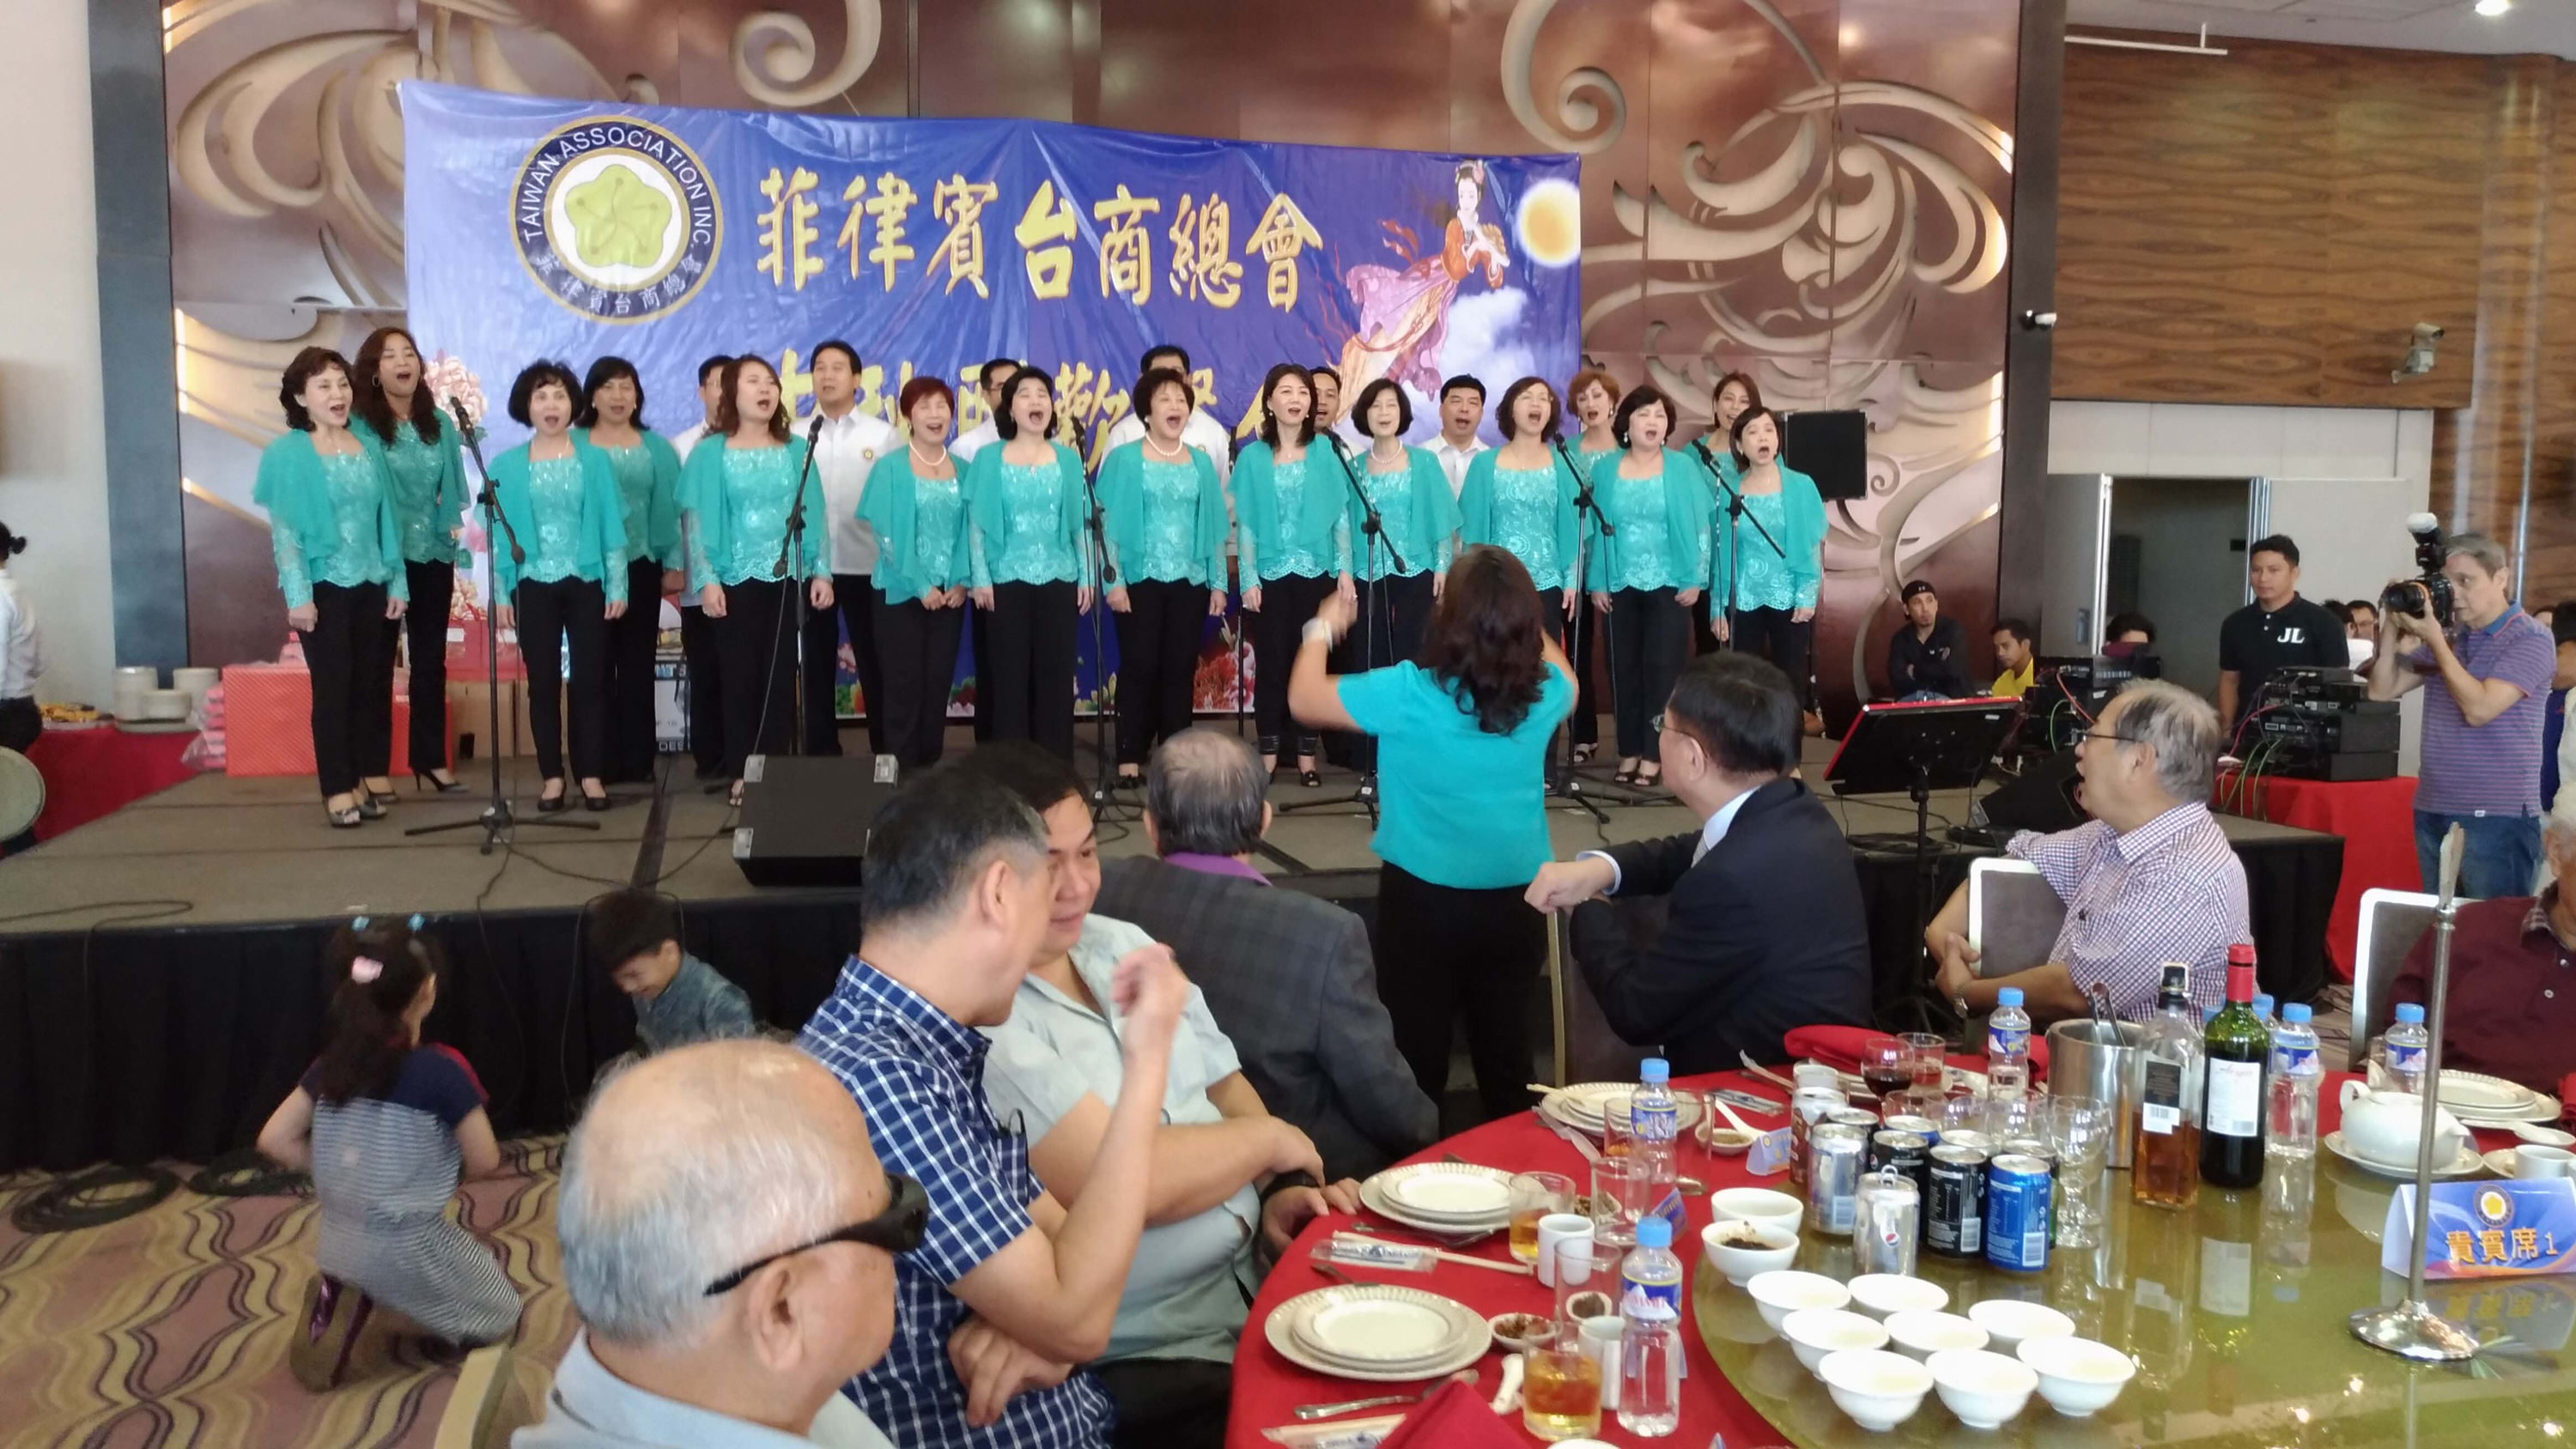 Taiwanese businessmen in Philippines support 'New Southward Policy'